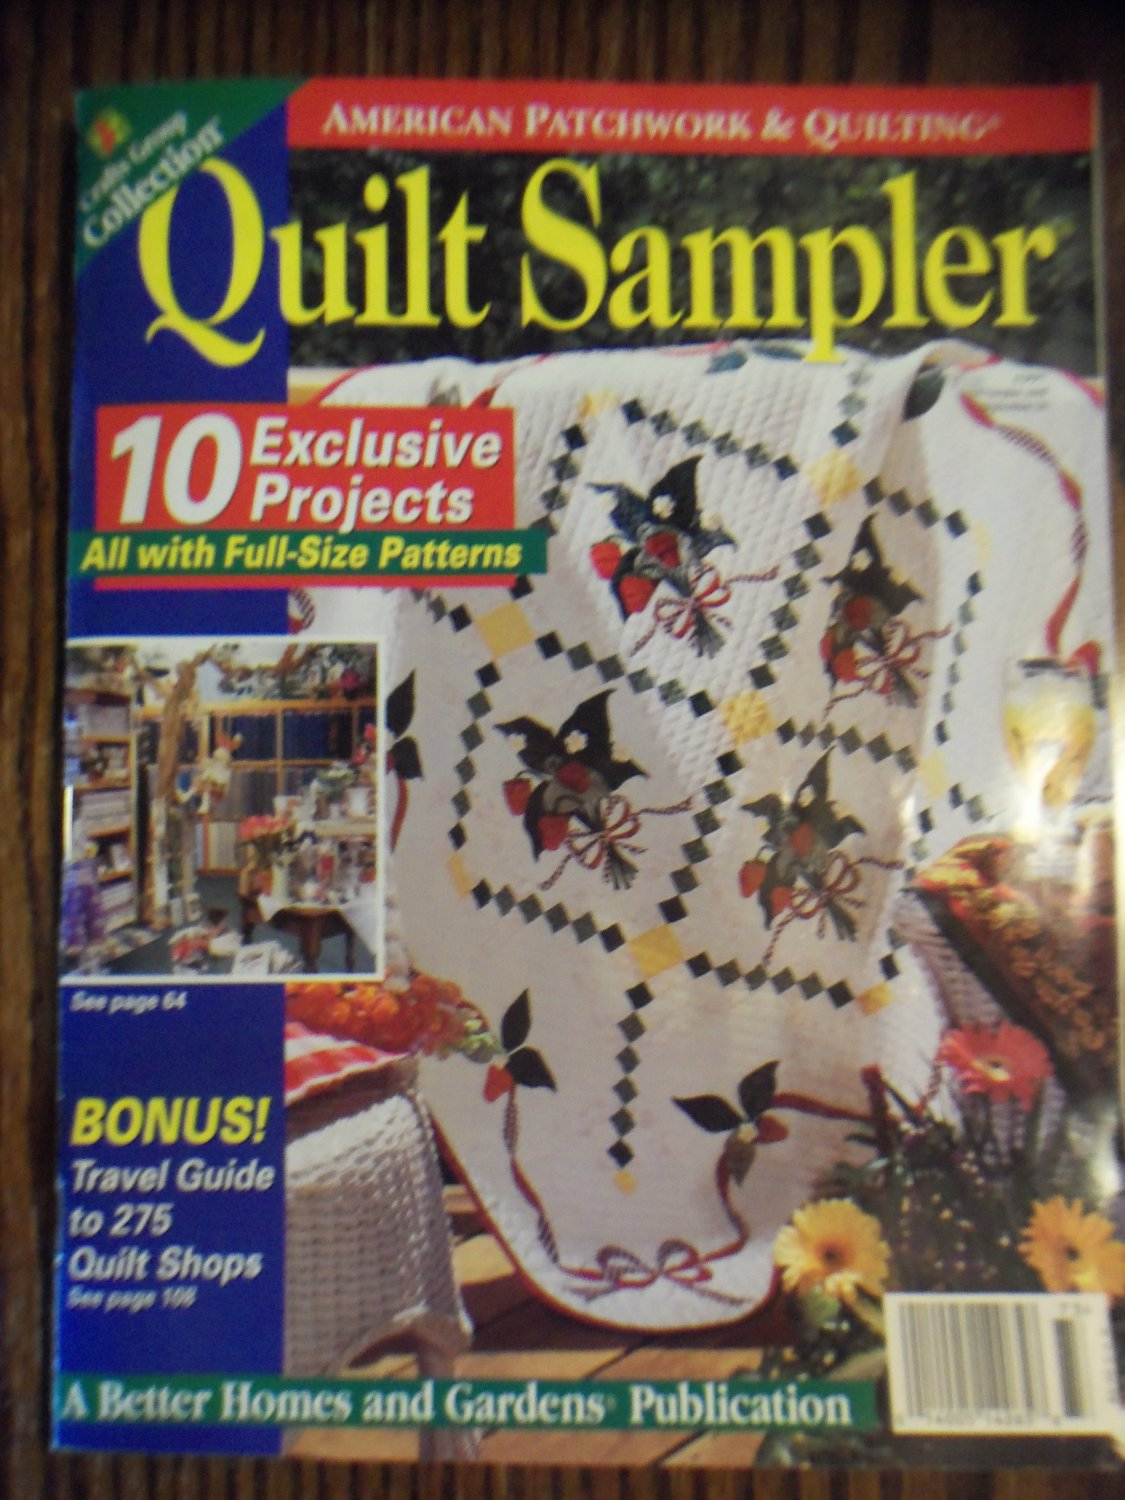 Better Homes And Gardens Magazine >> American Patchwork & Quilting Quilt Sampler 1997 Back Issue loc14